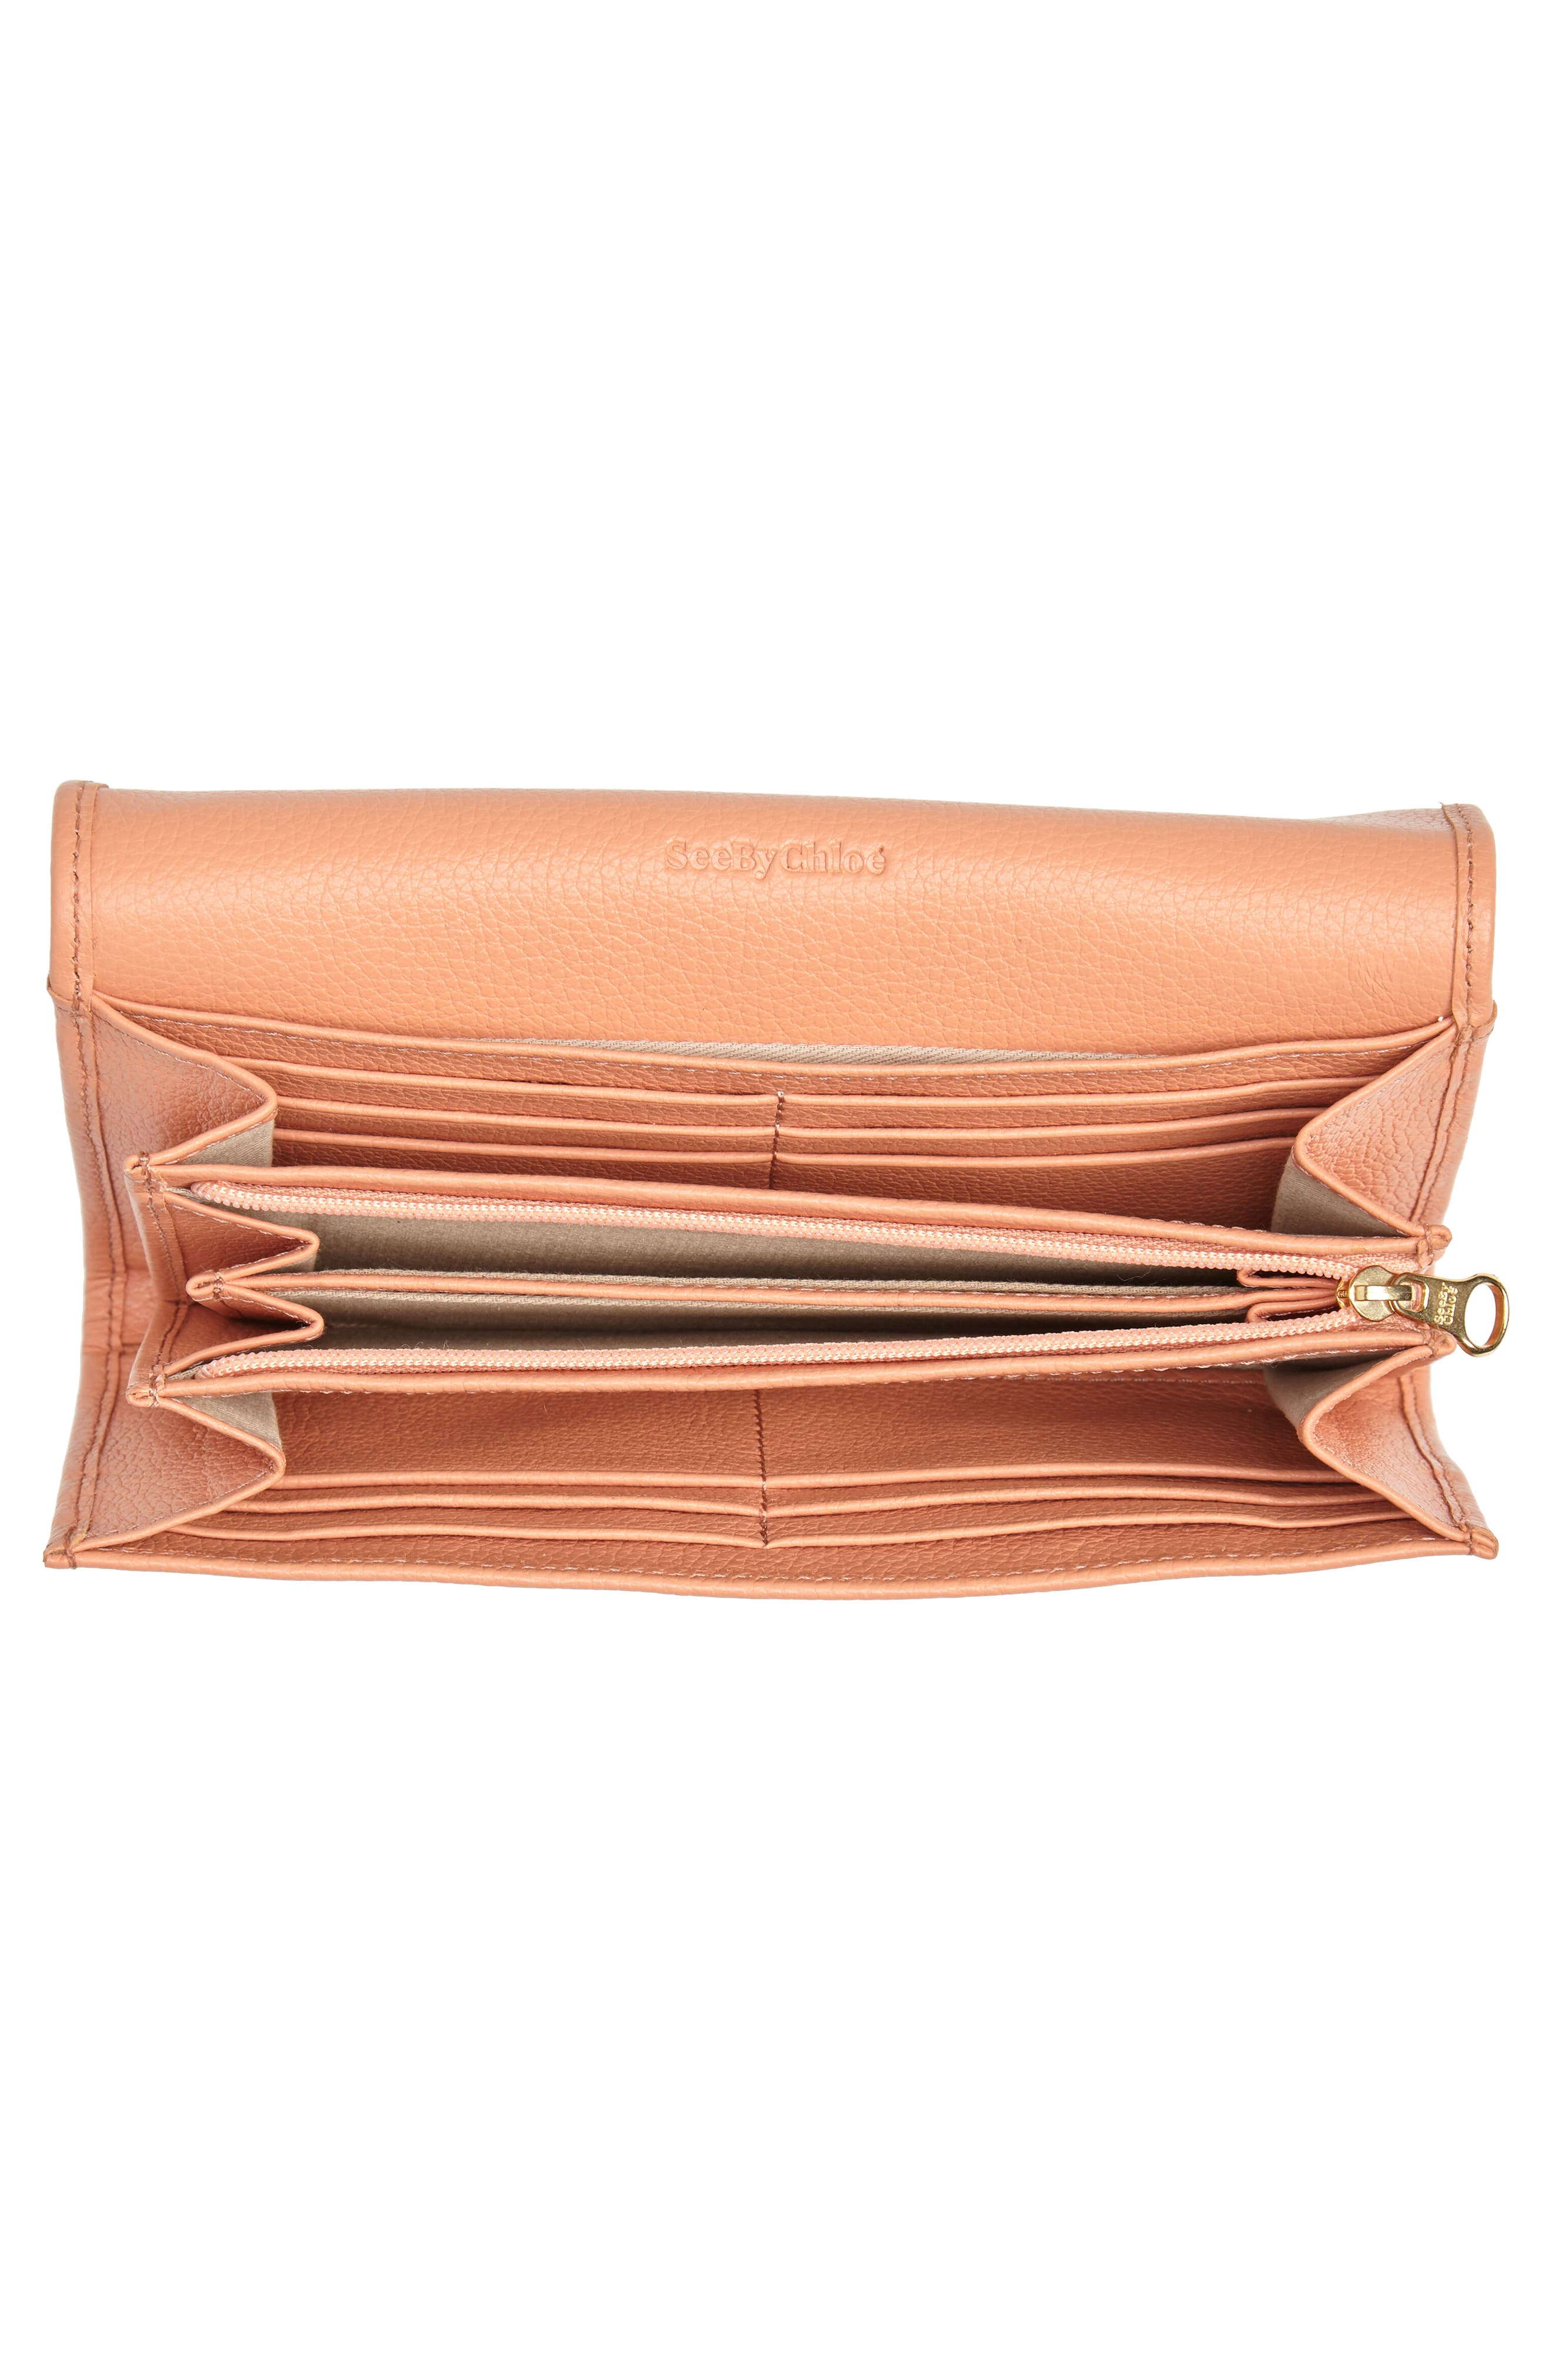 Lizzie Leather Continental Wallet,                             Alternate thumbnail 6, color,                             Canyon Sunset